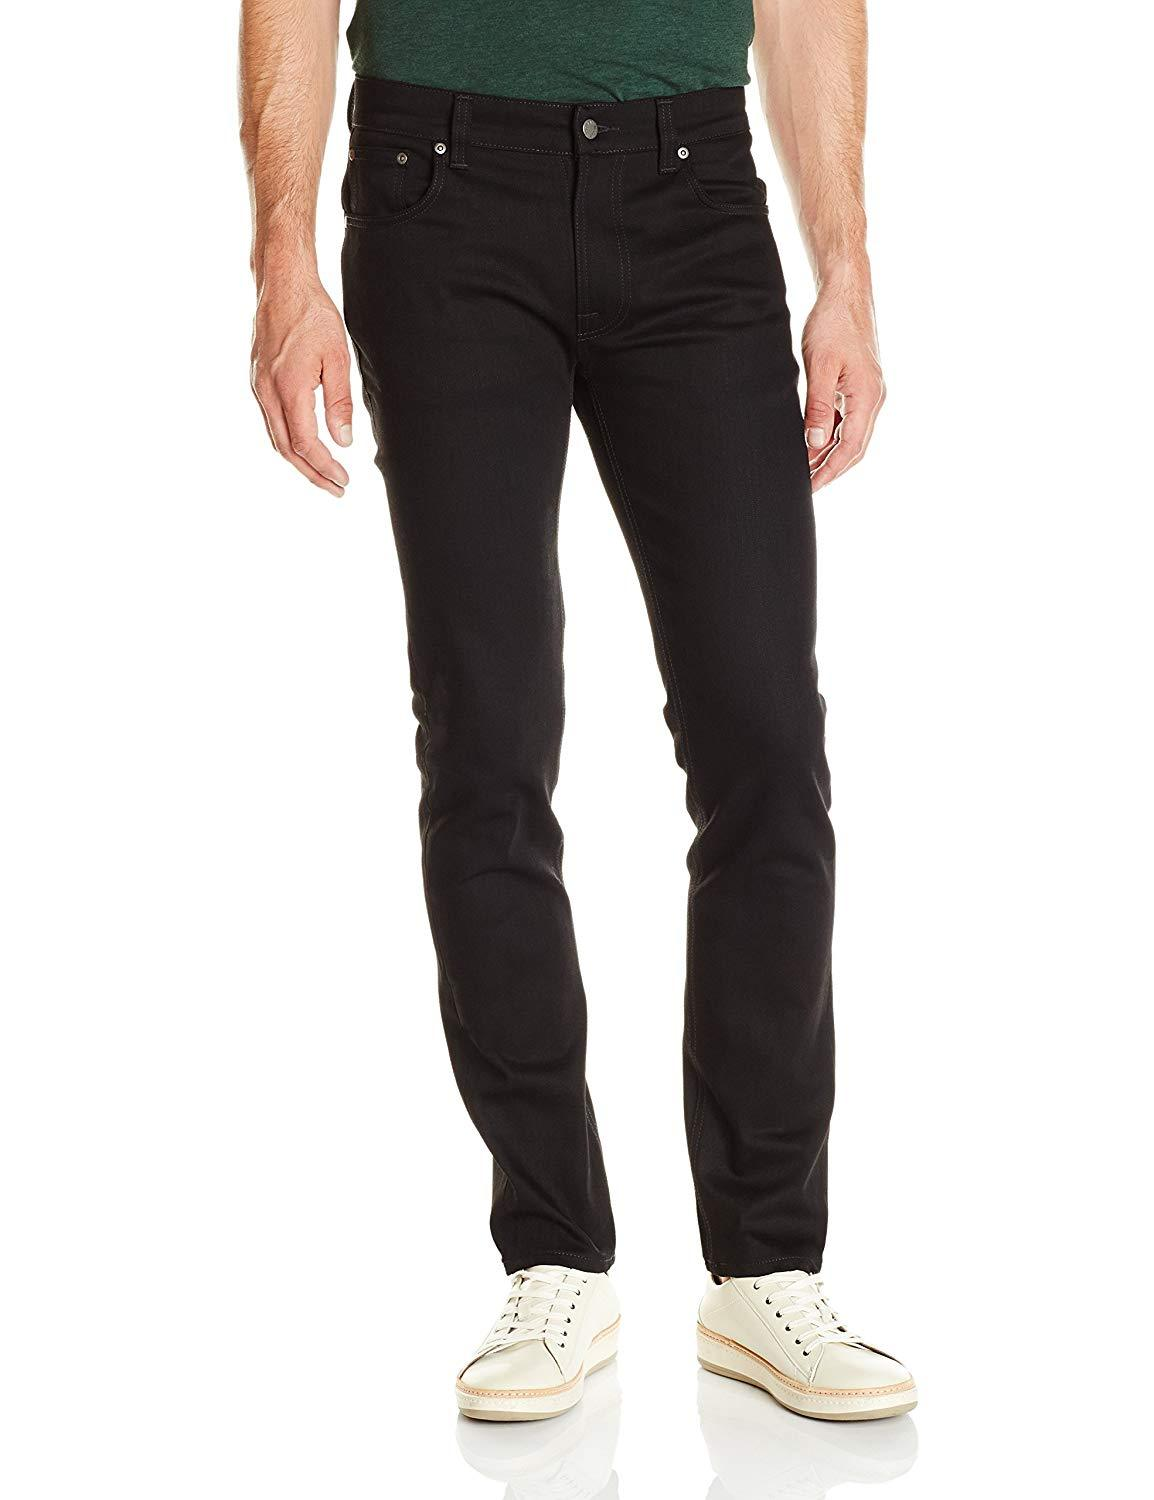 THIN FINN - 112303 MENS SOFTGOODS NUDIE JEANS